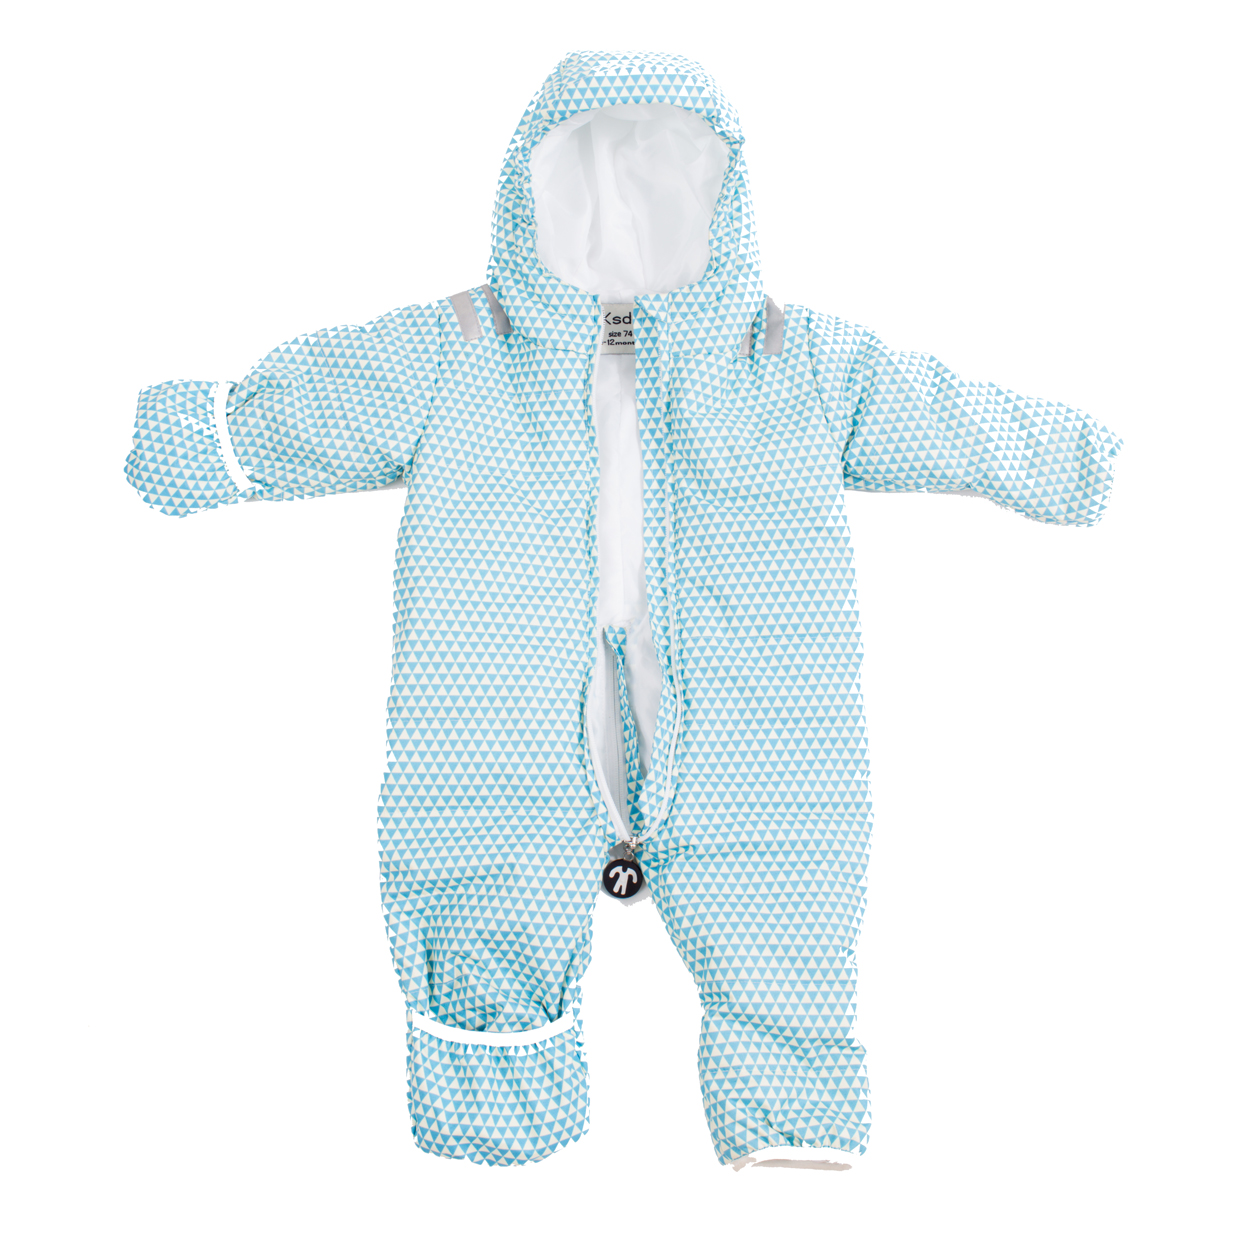 Ducksday-packshot-babysnowsuit-ace-detail1.jpg